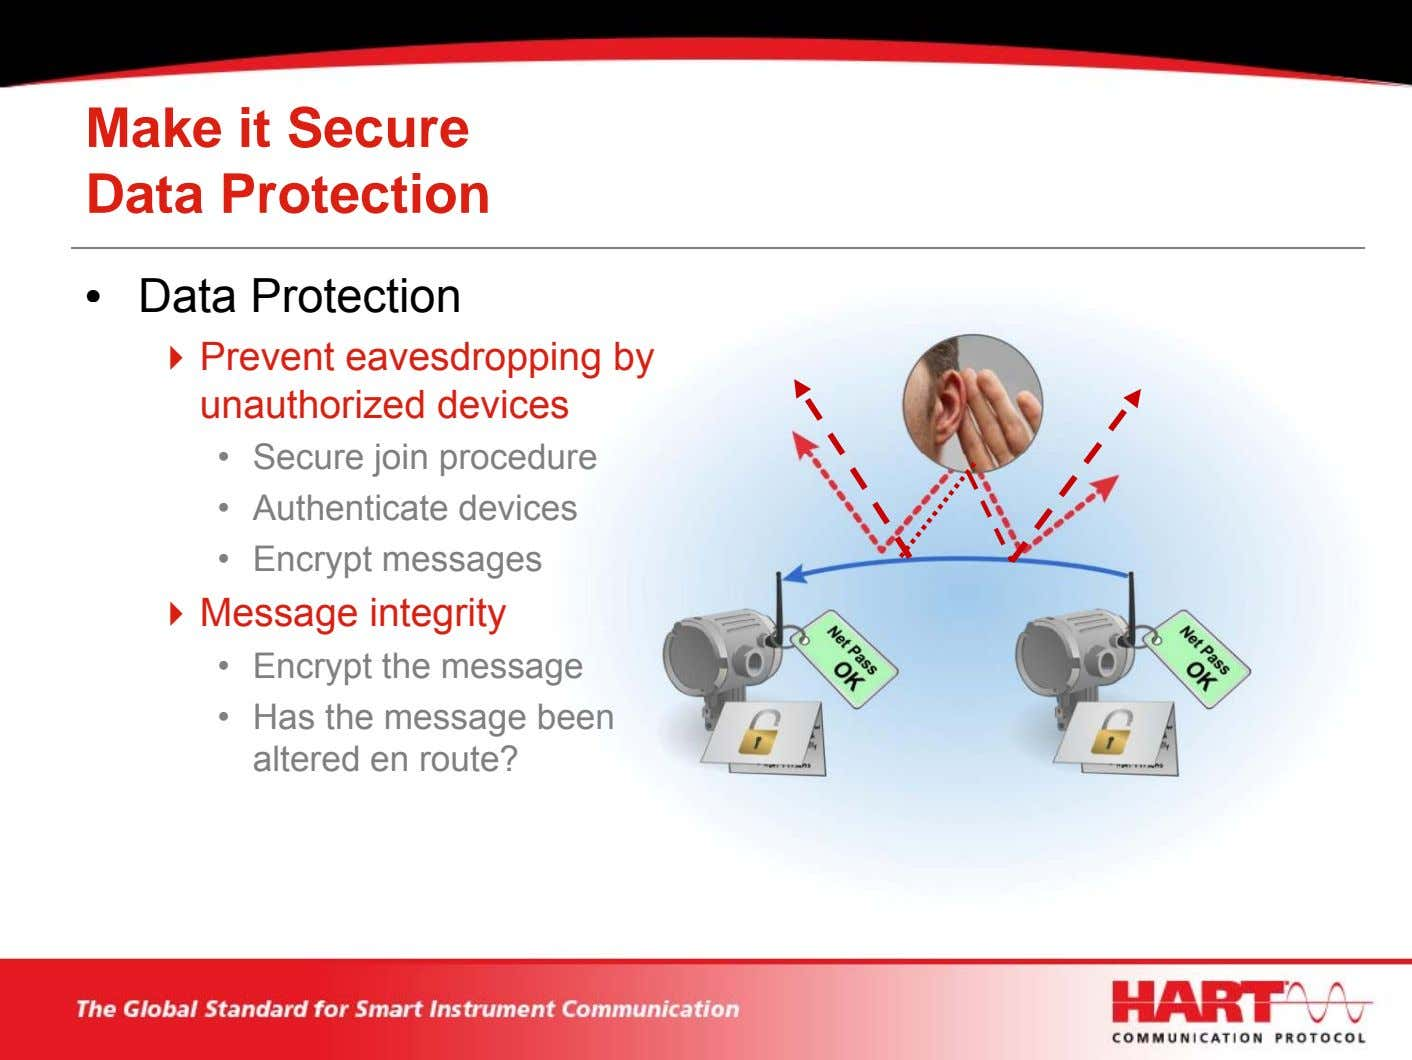 Make it Secure Data Protection • Data Protection Prevent eavesdropping by unauthorized devices • Secure